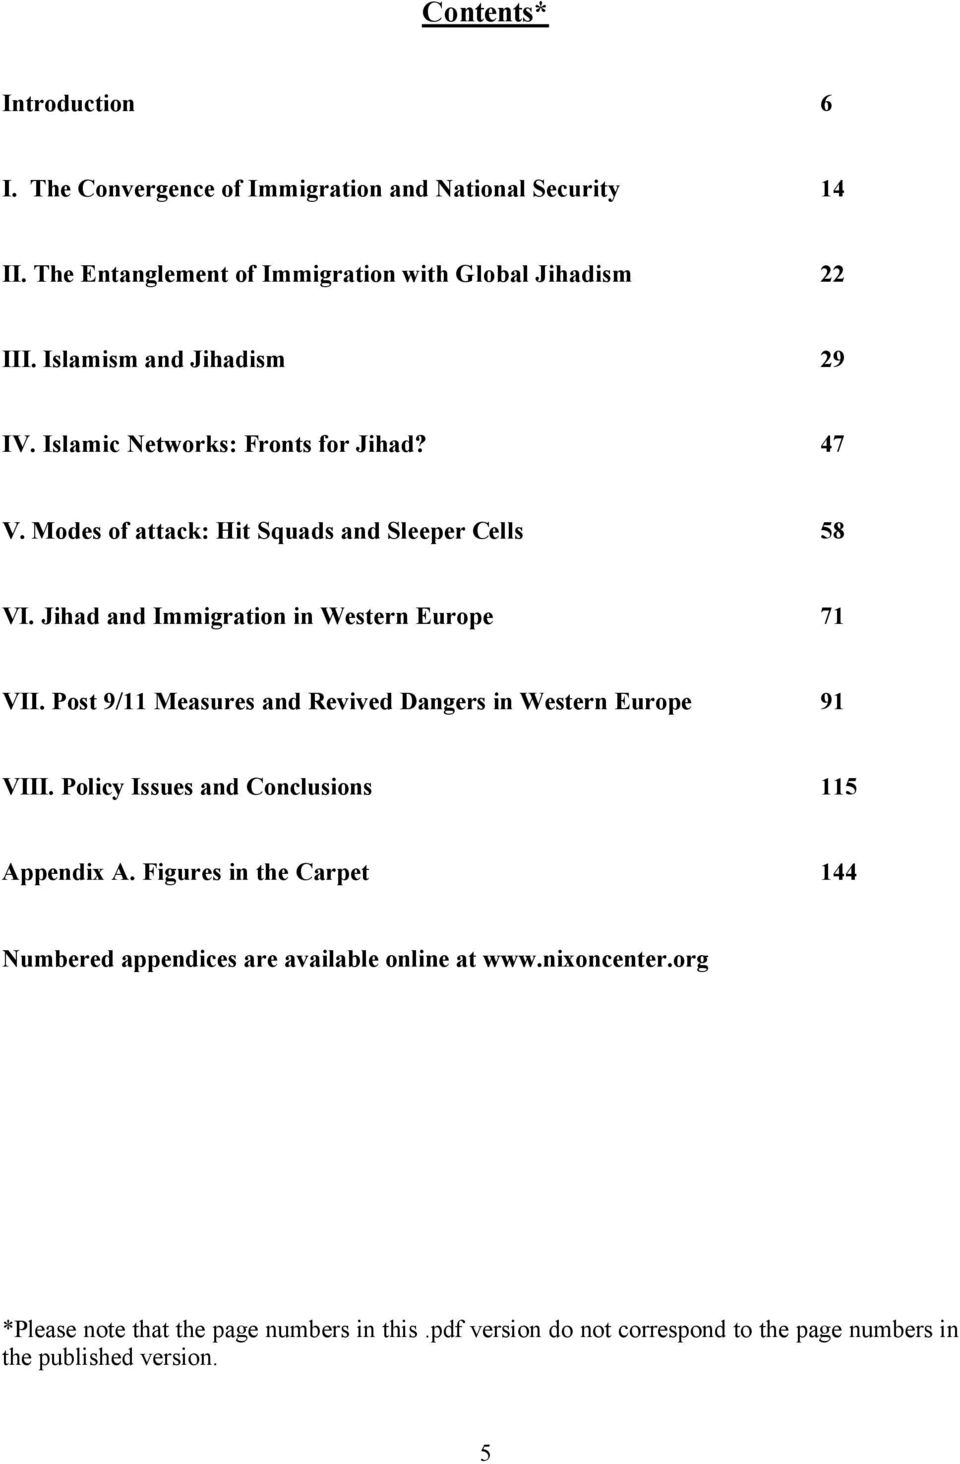 Jihad and Immigration in Western Europe 71 VII. Post 9/11 Measures and Revived Dangers in Western Europe 91 VIII. Policy Issues and Conclusions 115 Appendix A.